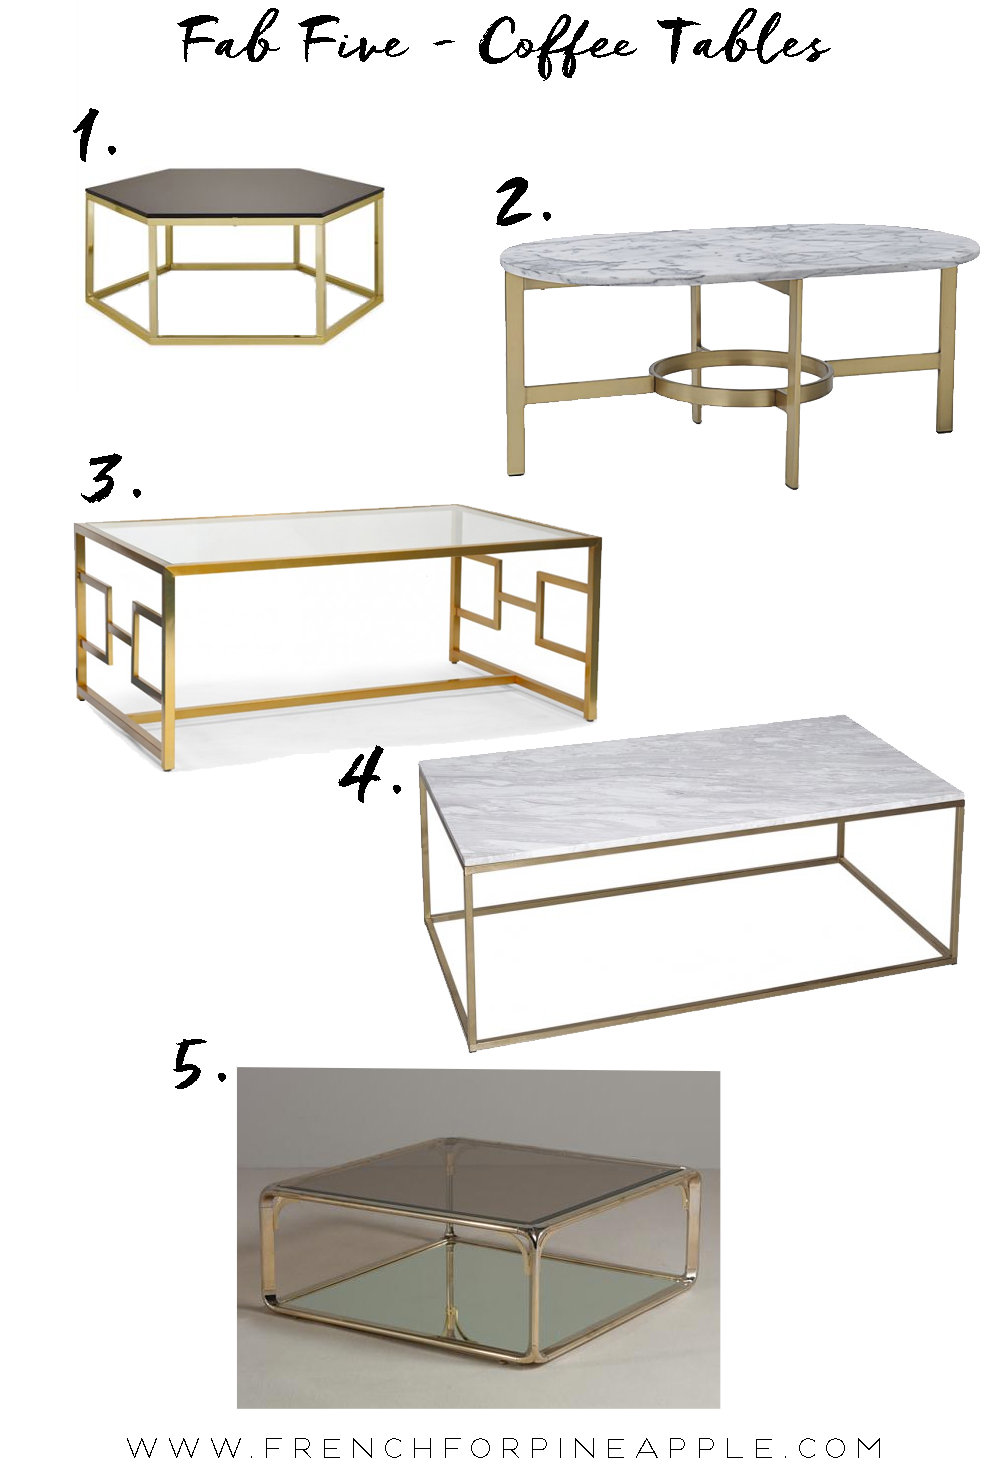 Fab Five Coffee Tables - French For Pineapple Blog